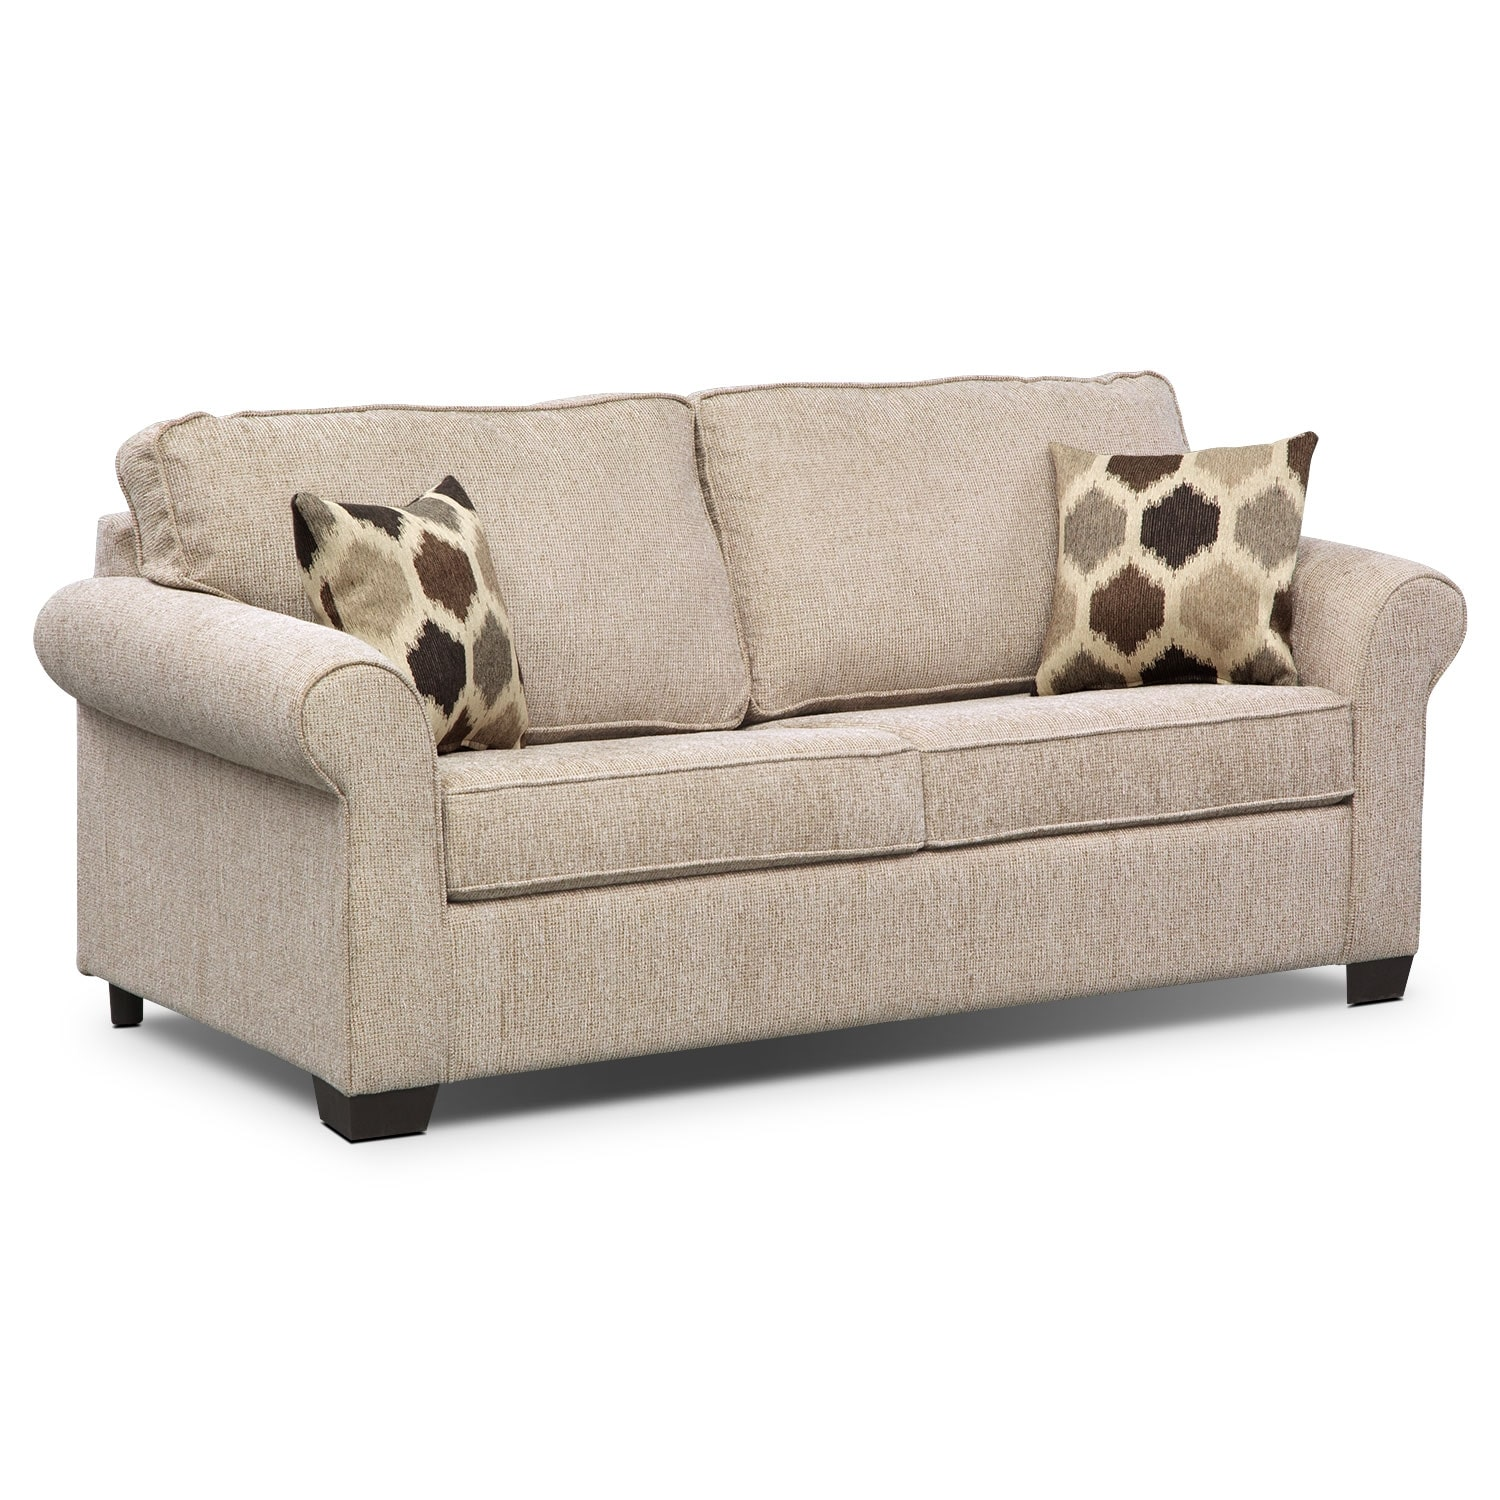 [Fletcher Full Memory Foam Sleeper Sofa]